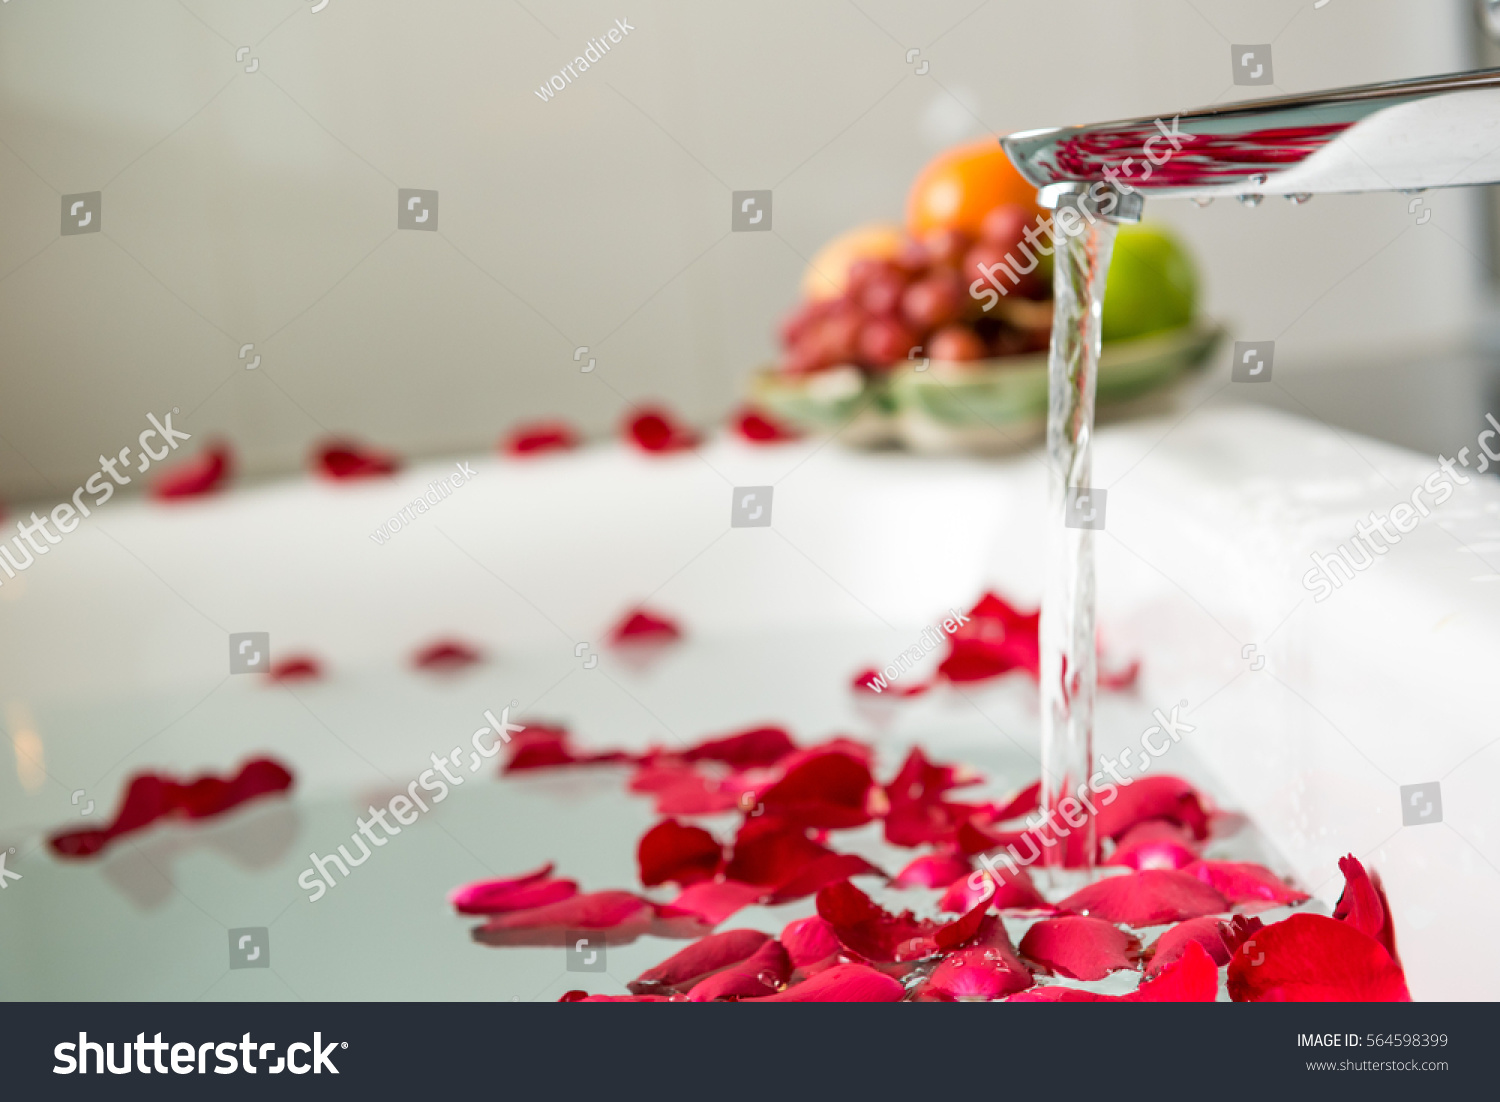 Rose Petals Put In Bathtub For Romantic Bathroom Honeymoon SuitArranged By Interior Designer